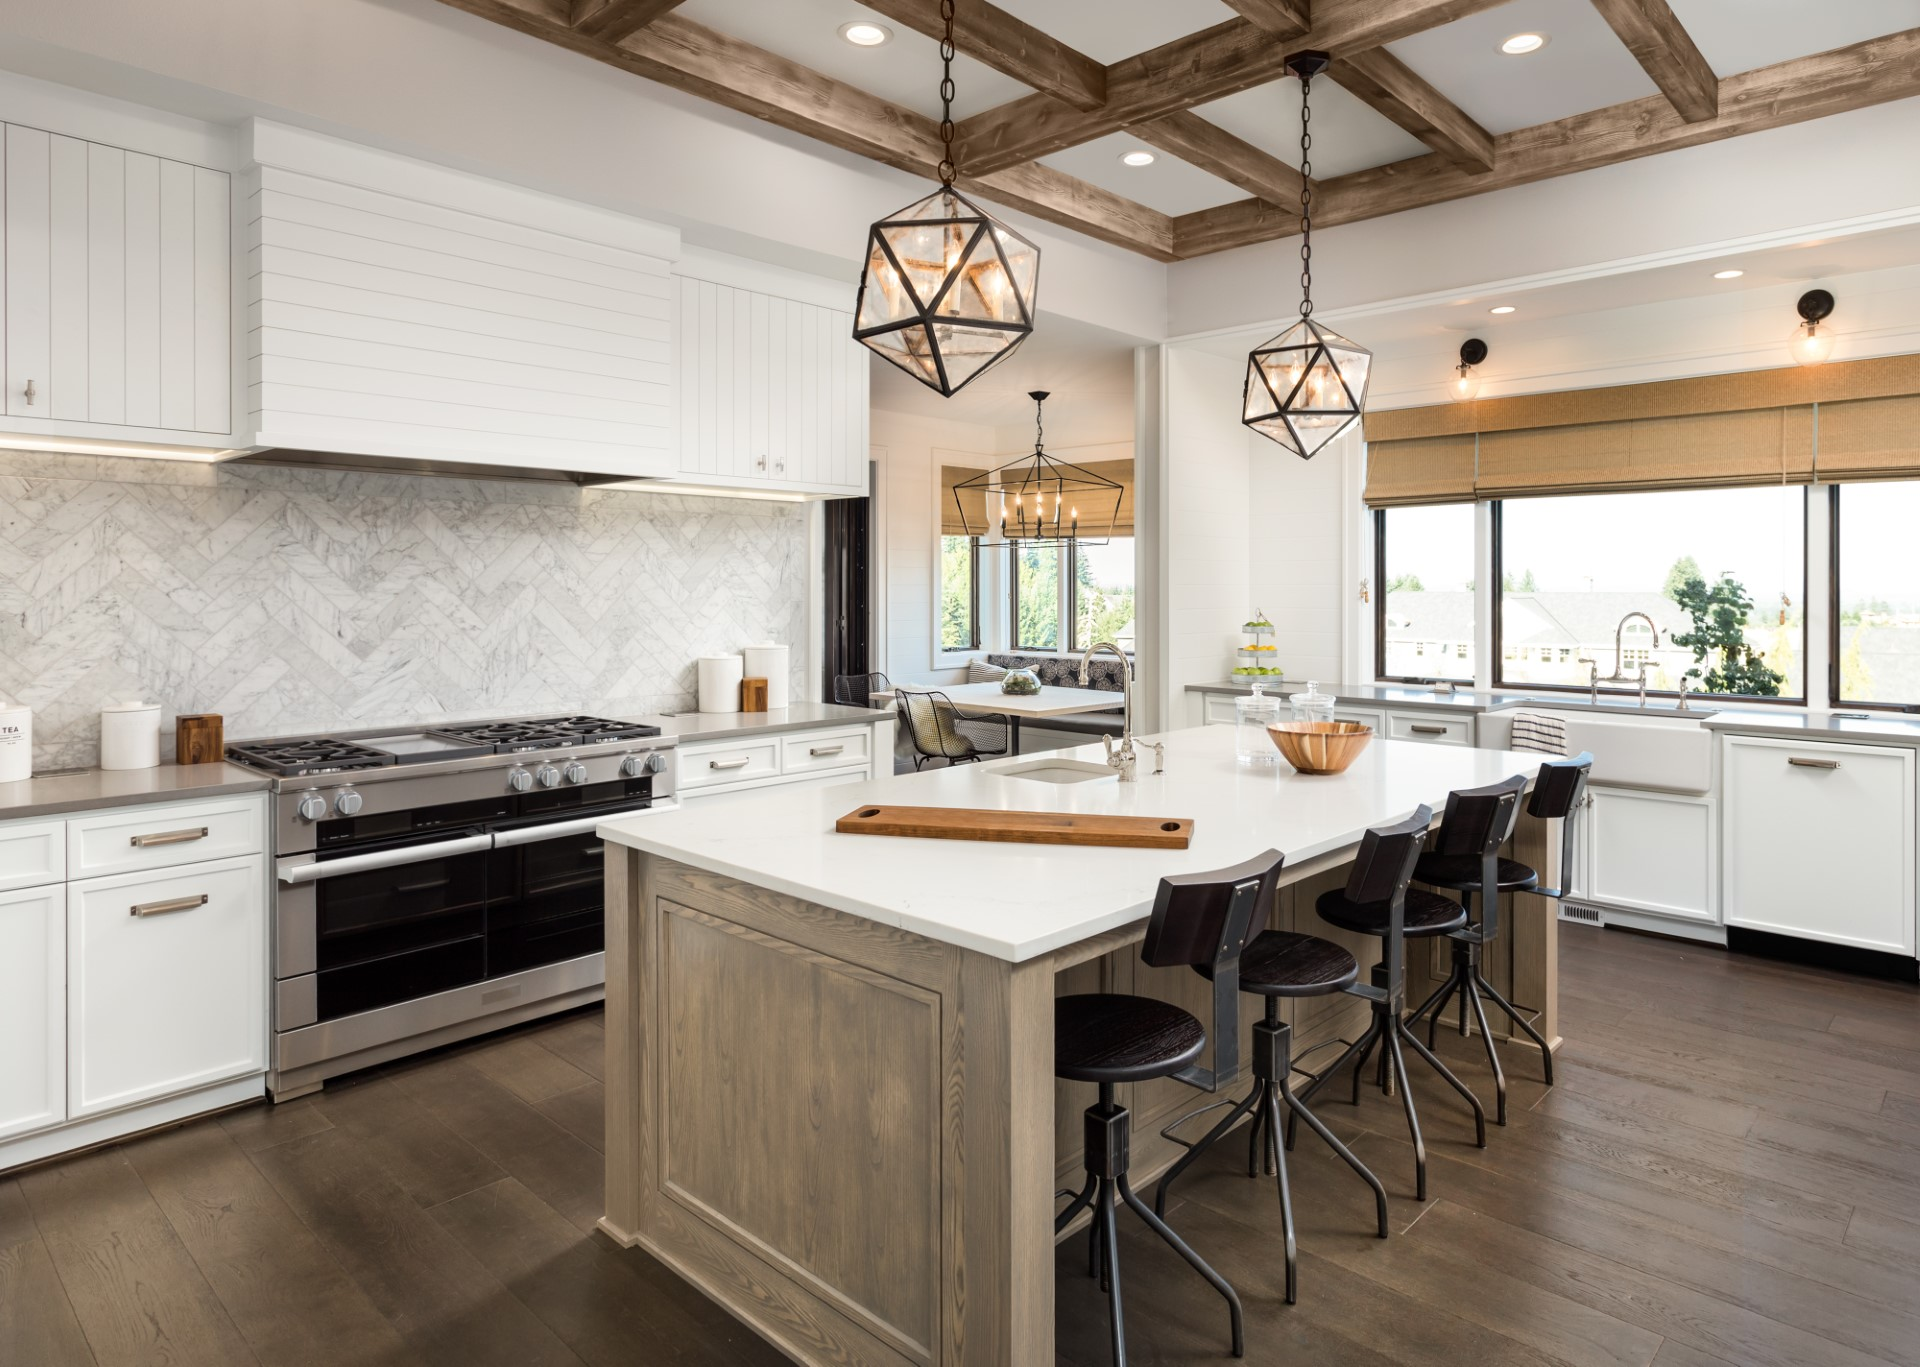 This kitchen takes on a very coastal feel, but the main decoration is the pendant lights with distinct geometric ambiance that catches your eye. The stained wood beams help make this layout truly majestic. The call